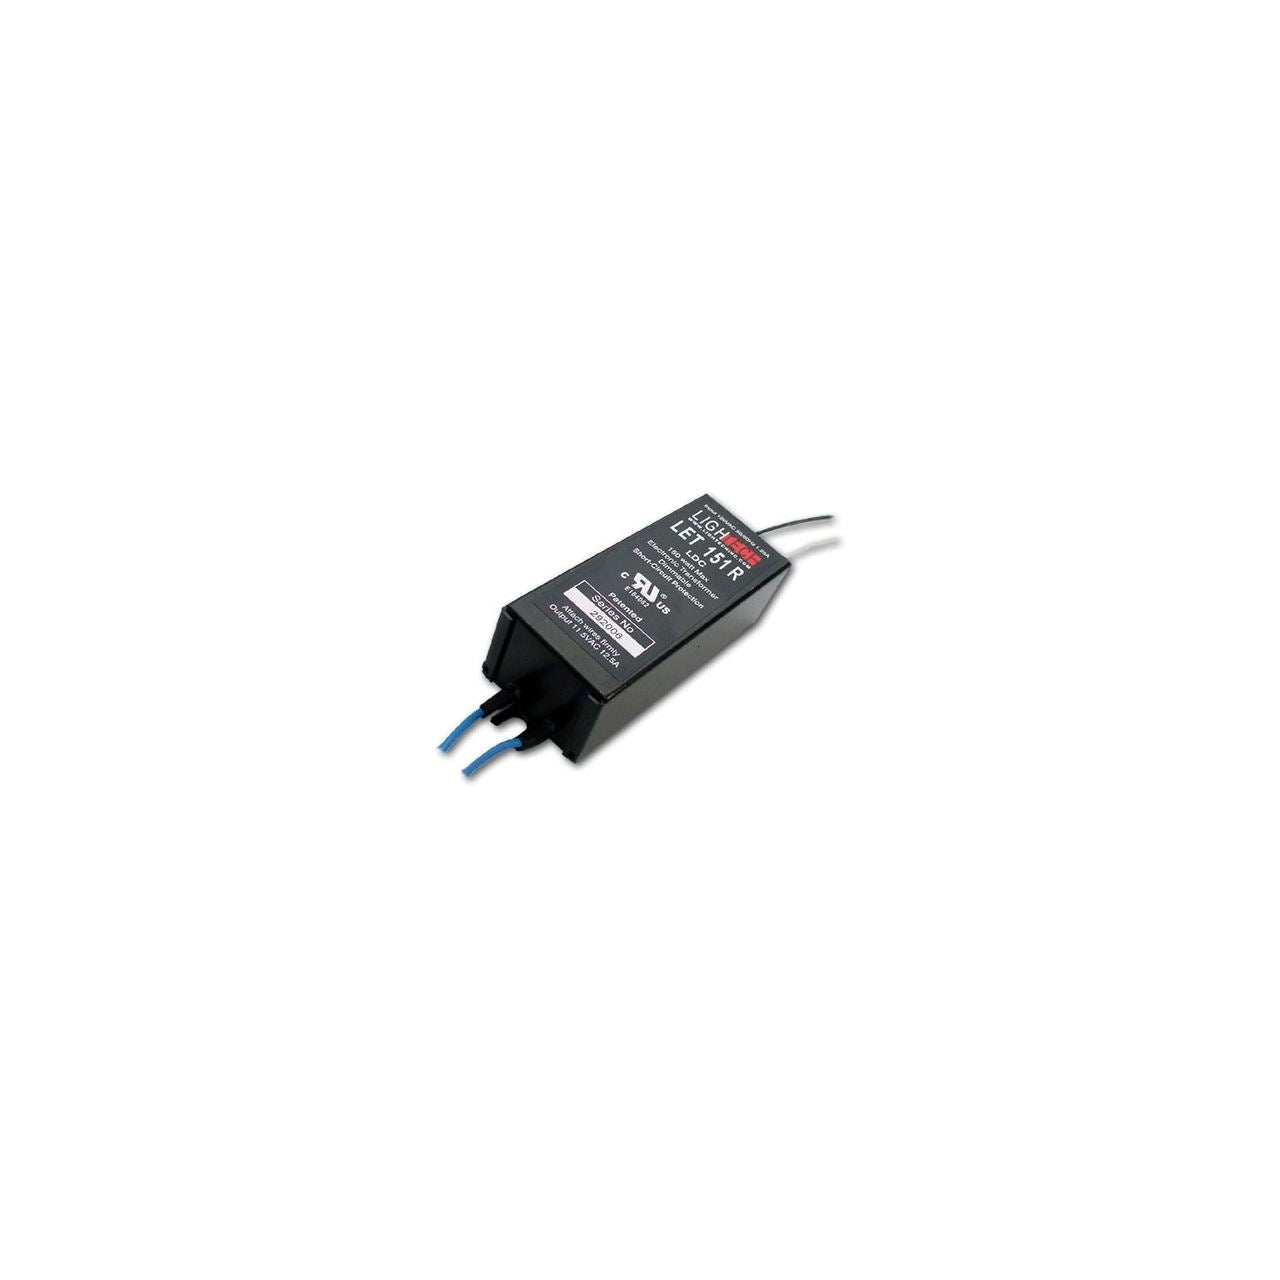 LET-151R - 150w dimmable transformer - 120v-12v